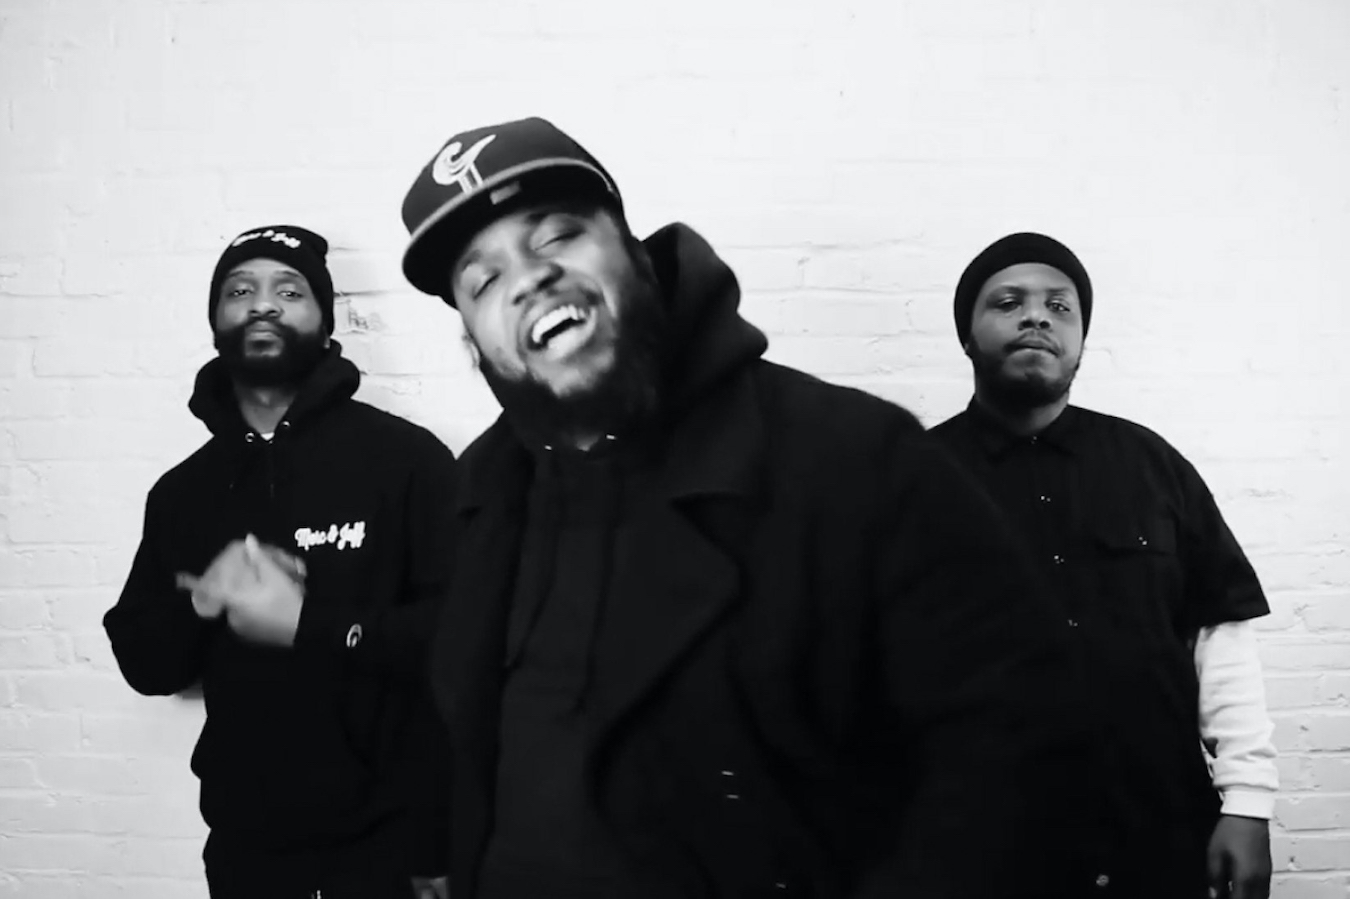 Opioids Like 'Lean' Permeate Hip-Hop Culture, but Dangers Are Downplayed 5/30/21